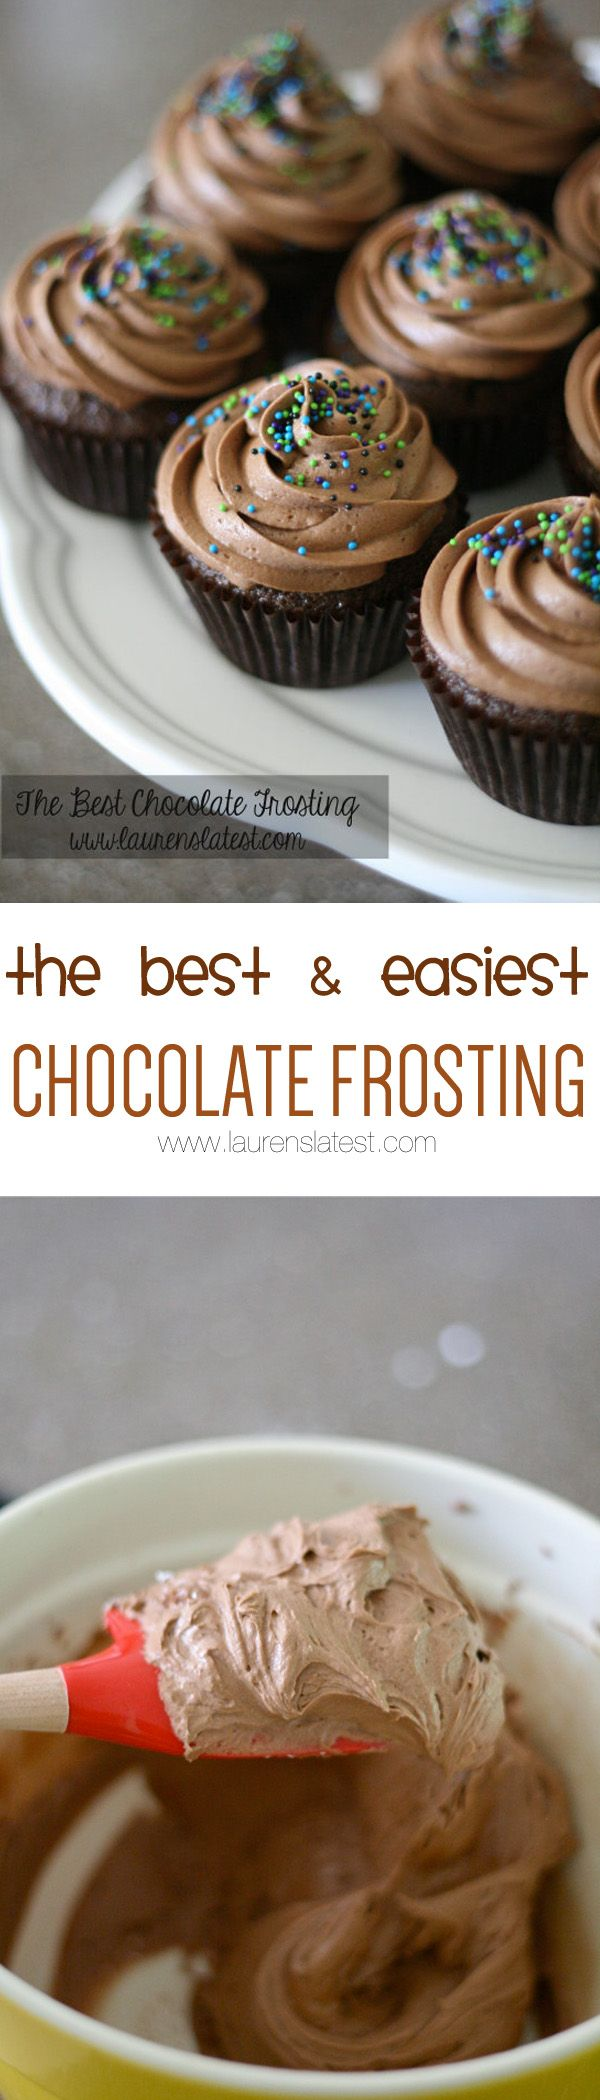 The Best & Easiest Chocolate Frosting